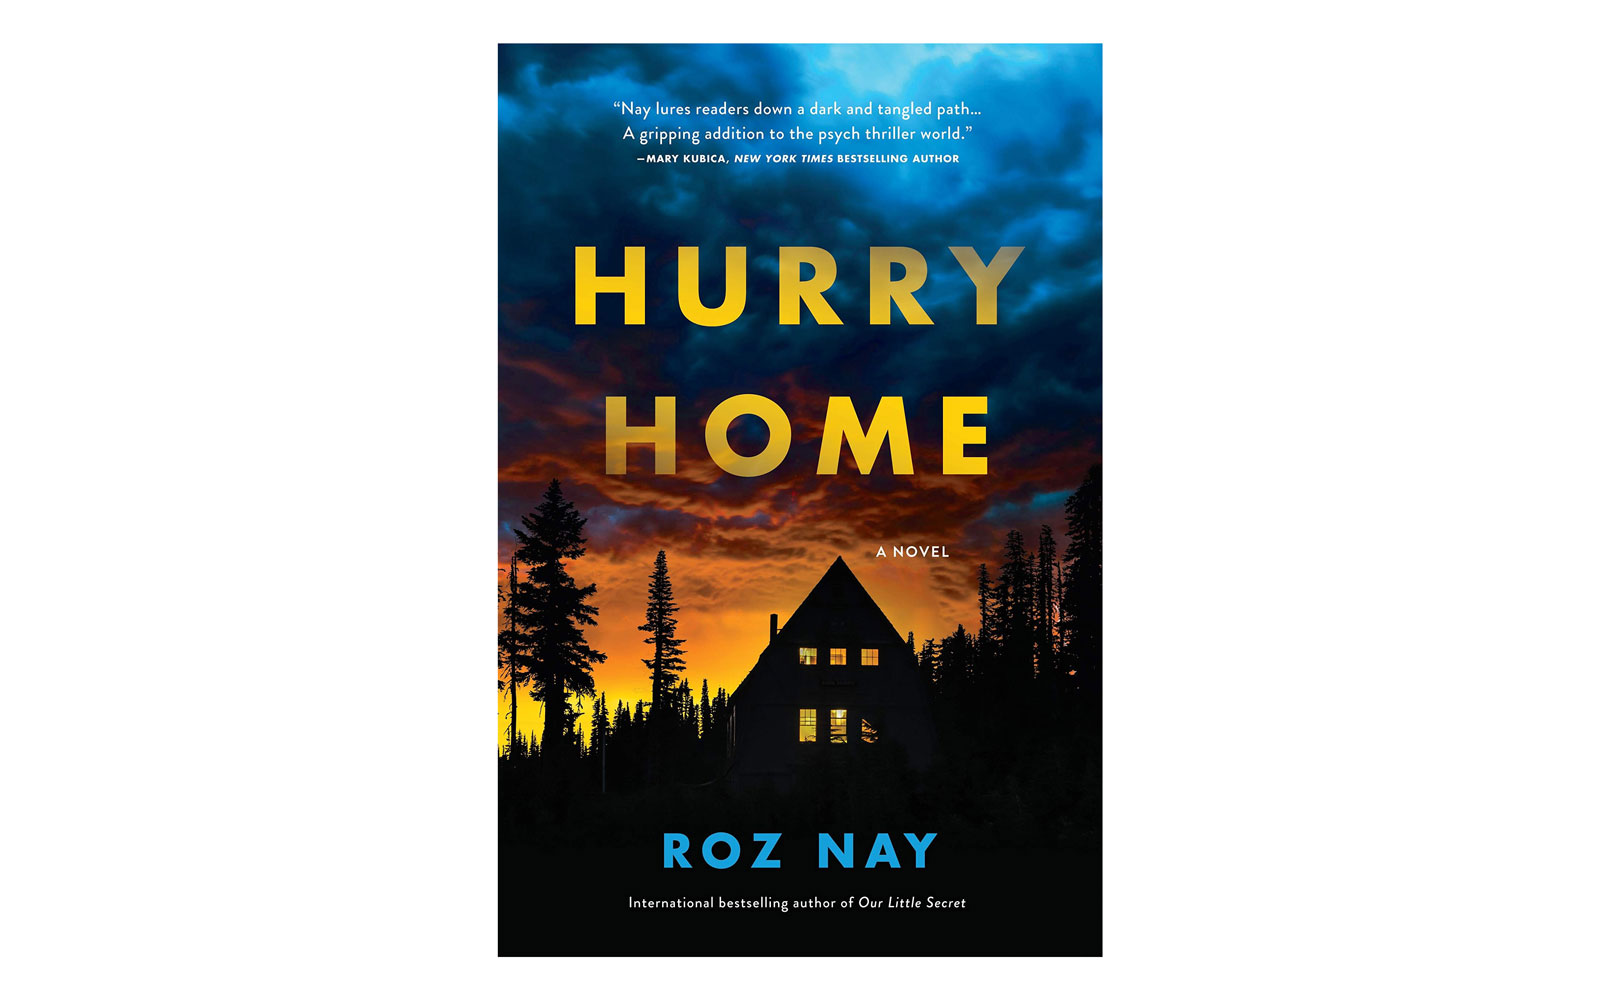 15.  Hurry Home  by Roz Nay